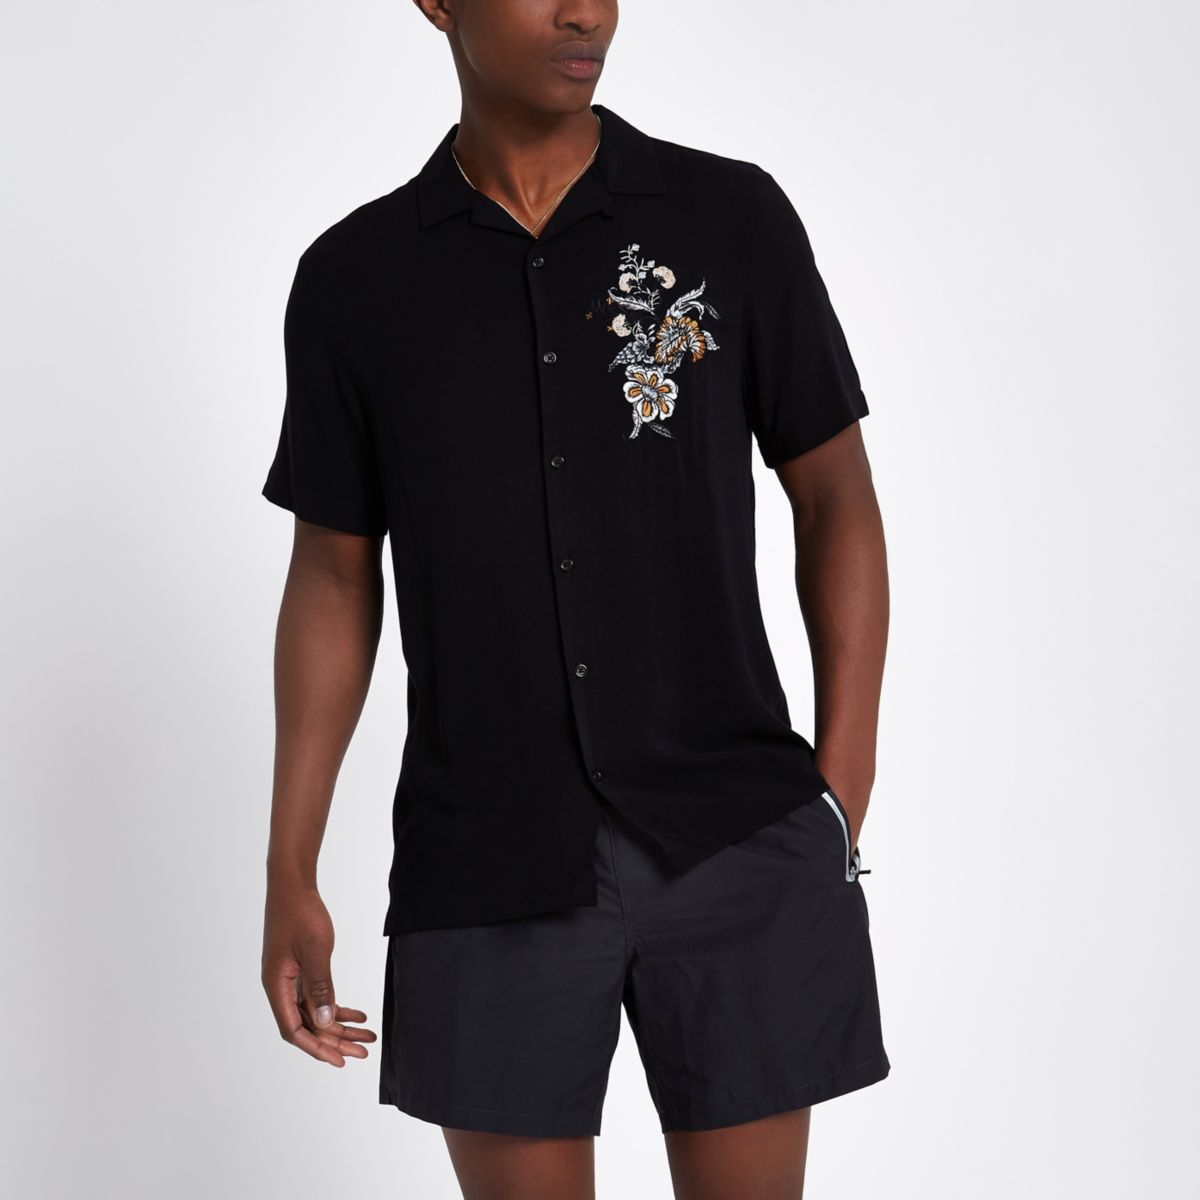 Black Floral Embroidered Casual Shirt by River Island